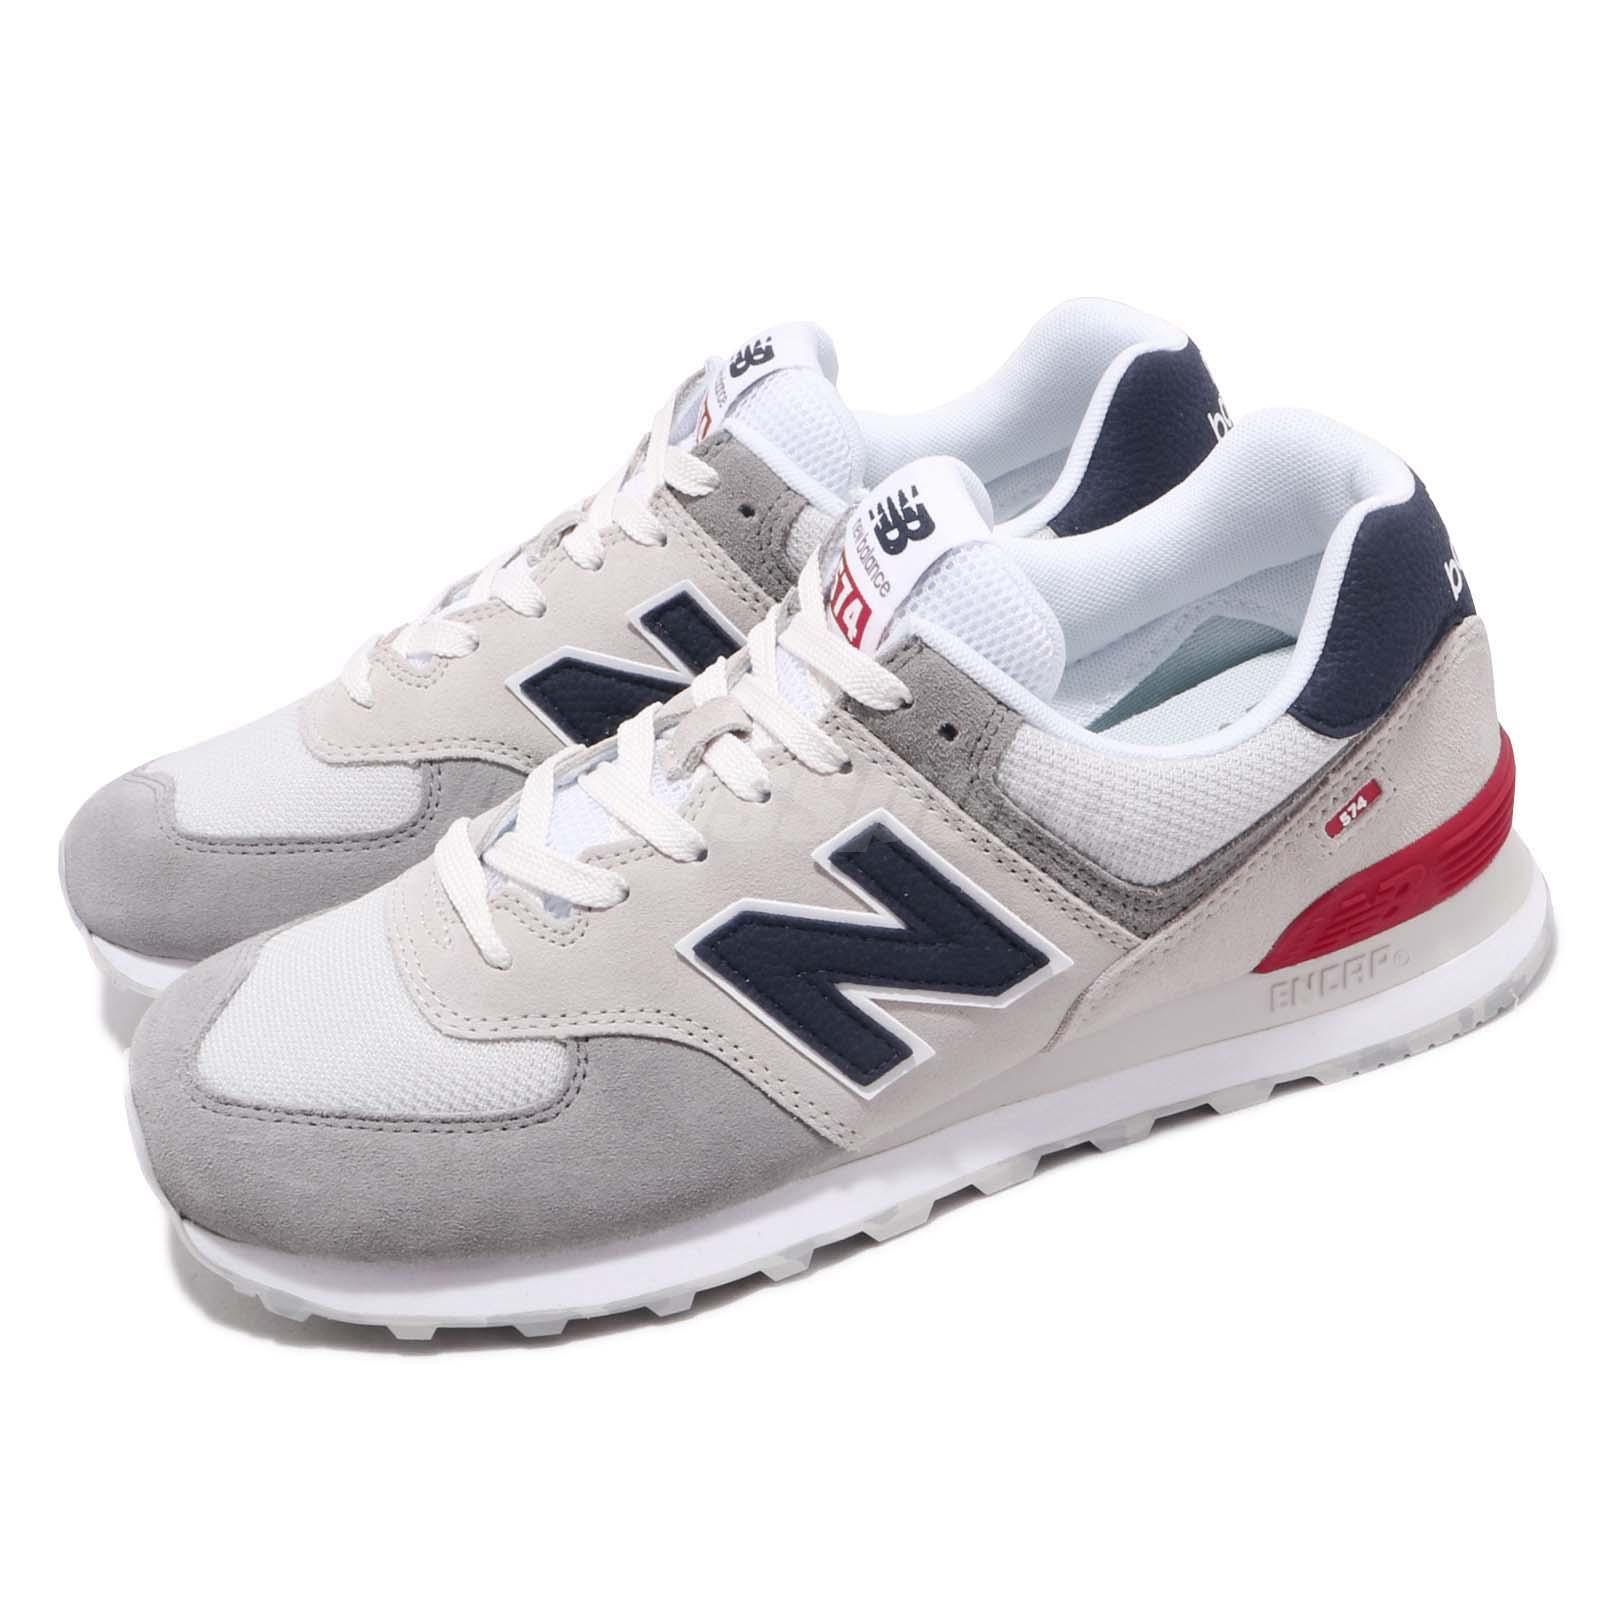 Details about New Balance ML574UJD D Grey Blue Red White Men Running Shoes  Sneakers ML574UJDD